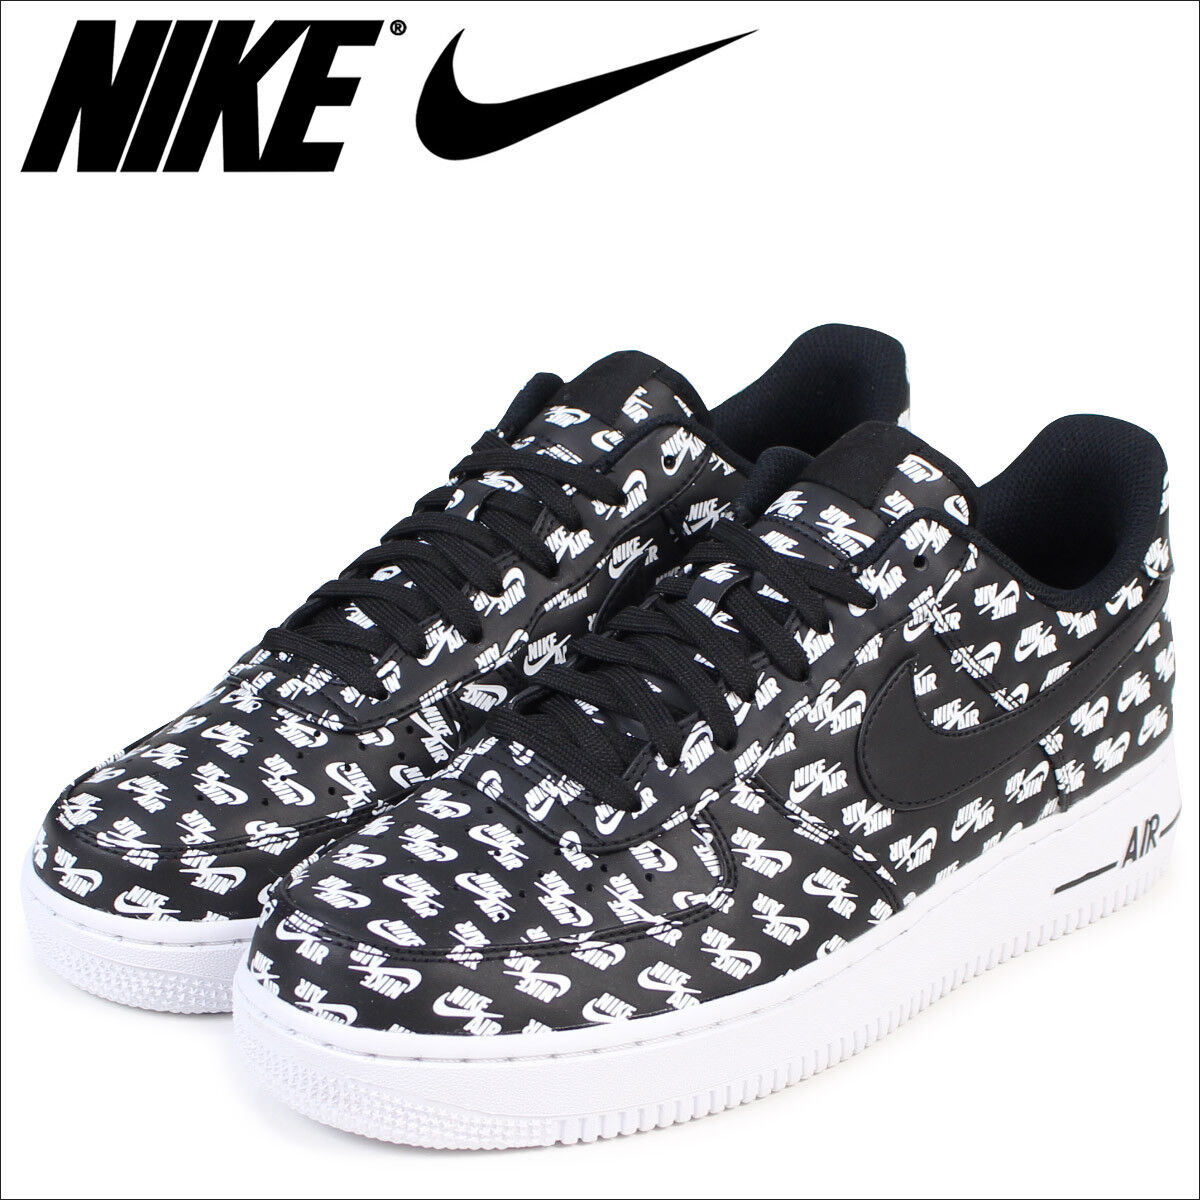 Nike Air Force 1 Low 07 QS All Over Logo Pack Black White AH8462-001 sz 10 shoes